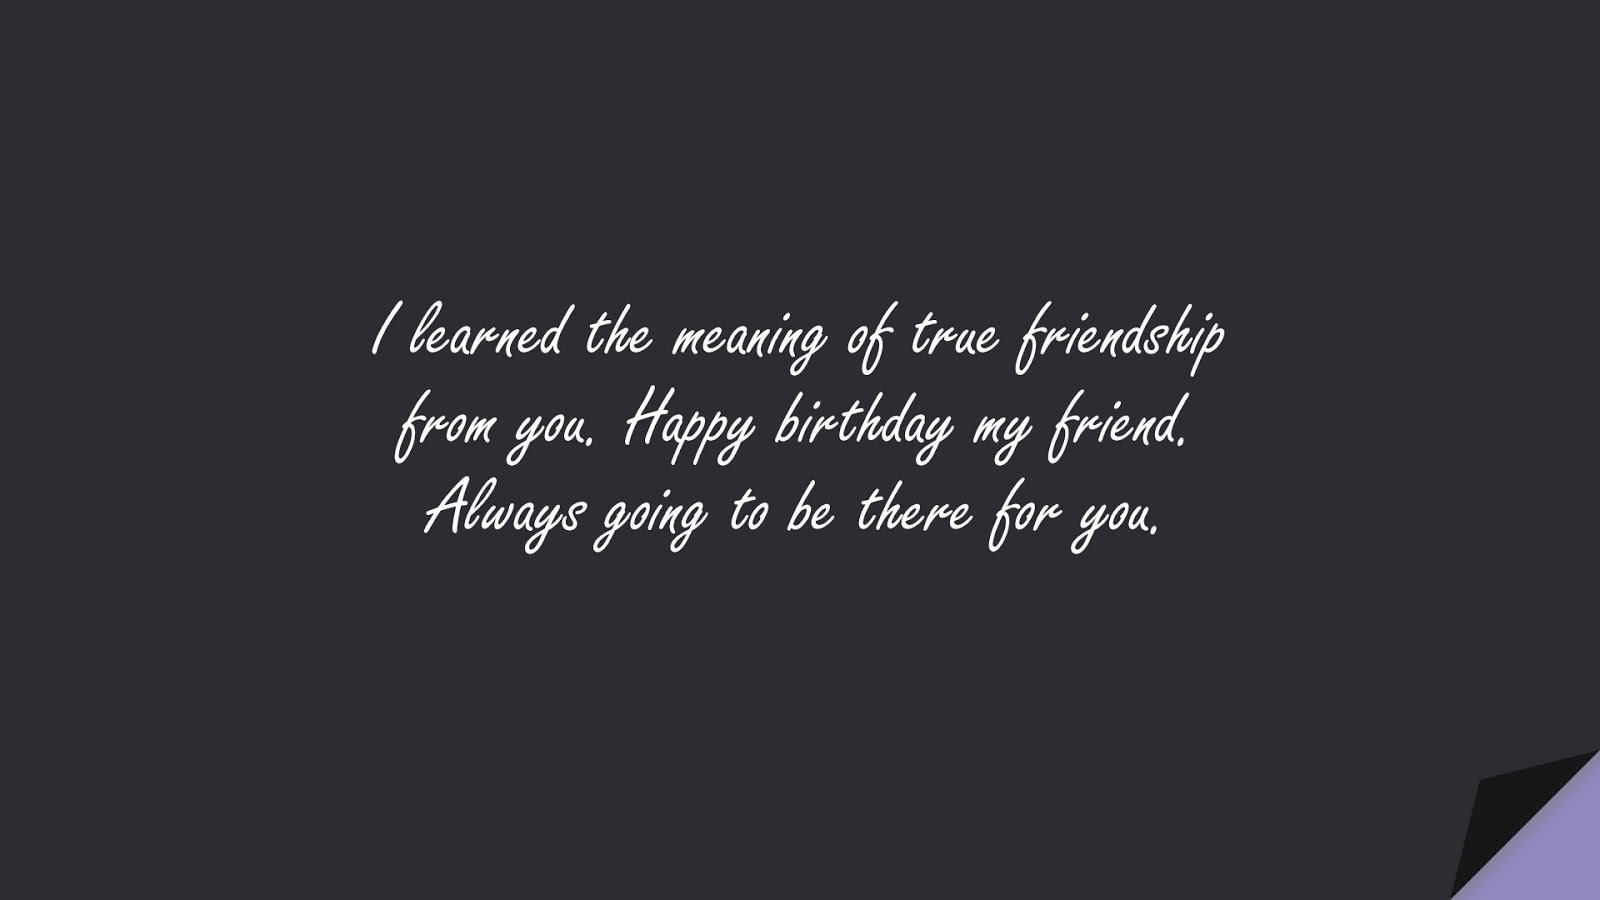 I learned the meaning of true friendship from you. Happy birthday my friend. Always going to be there for you.FALSE